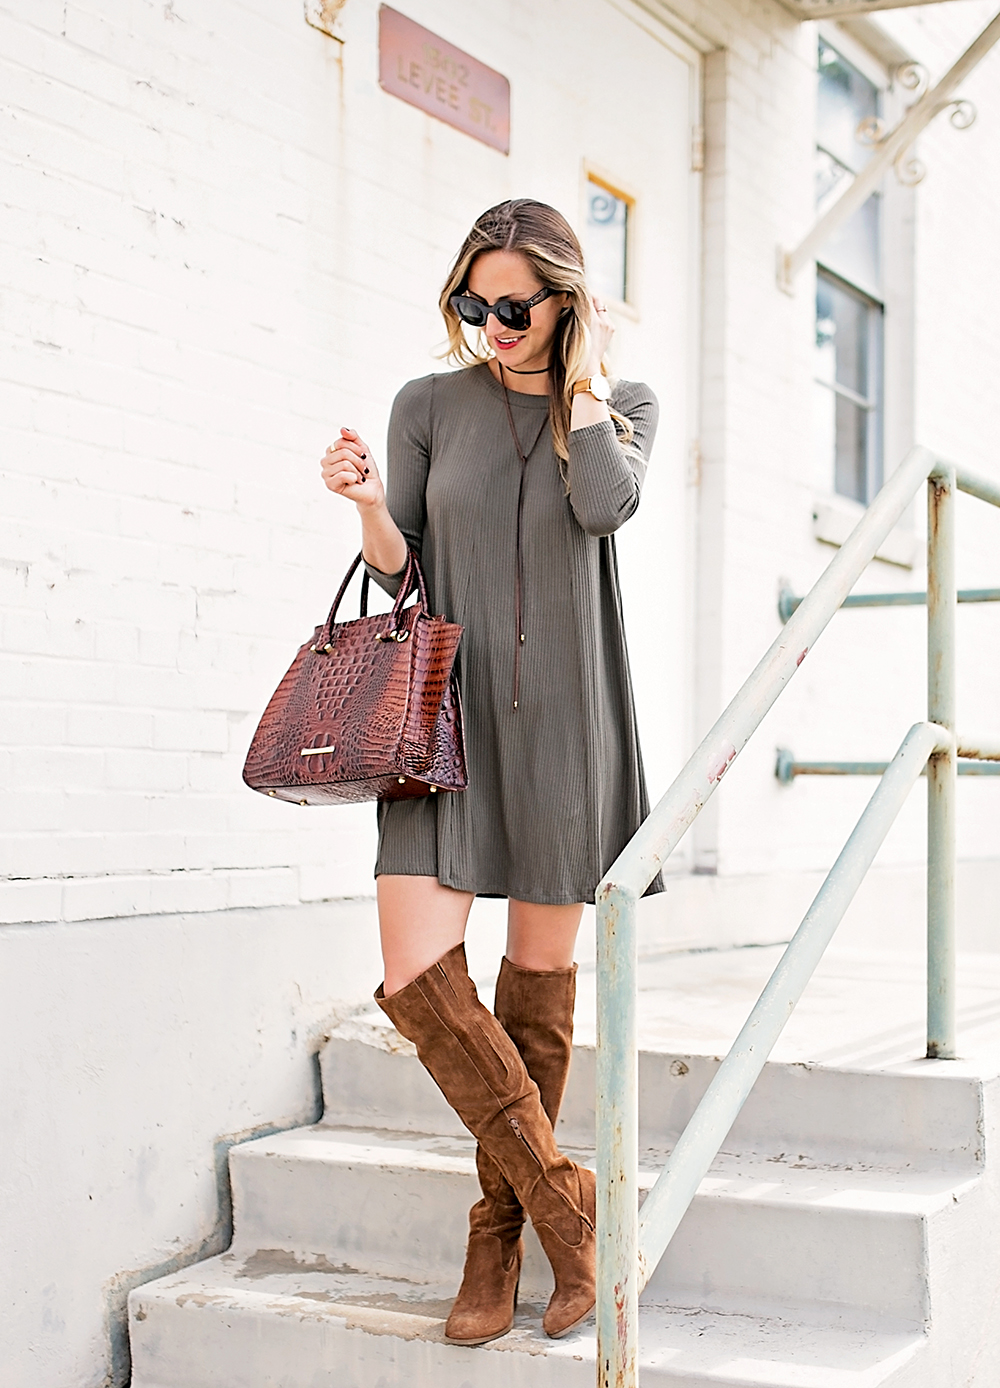 livvyland-blog-olivia-watson-austin-texas-fashion-blogger-fall-outfit-over-the-knee-otk-boots-brahmin-duxbury-handbag-olive-green-shift-dress-celine-marta-mini-sunglasses-2